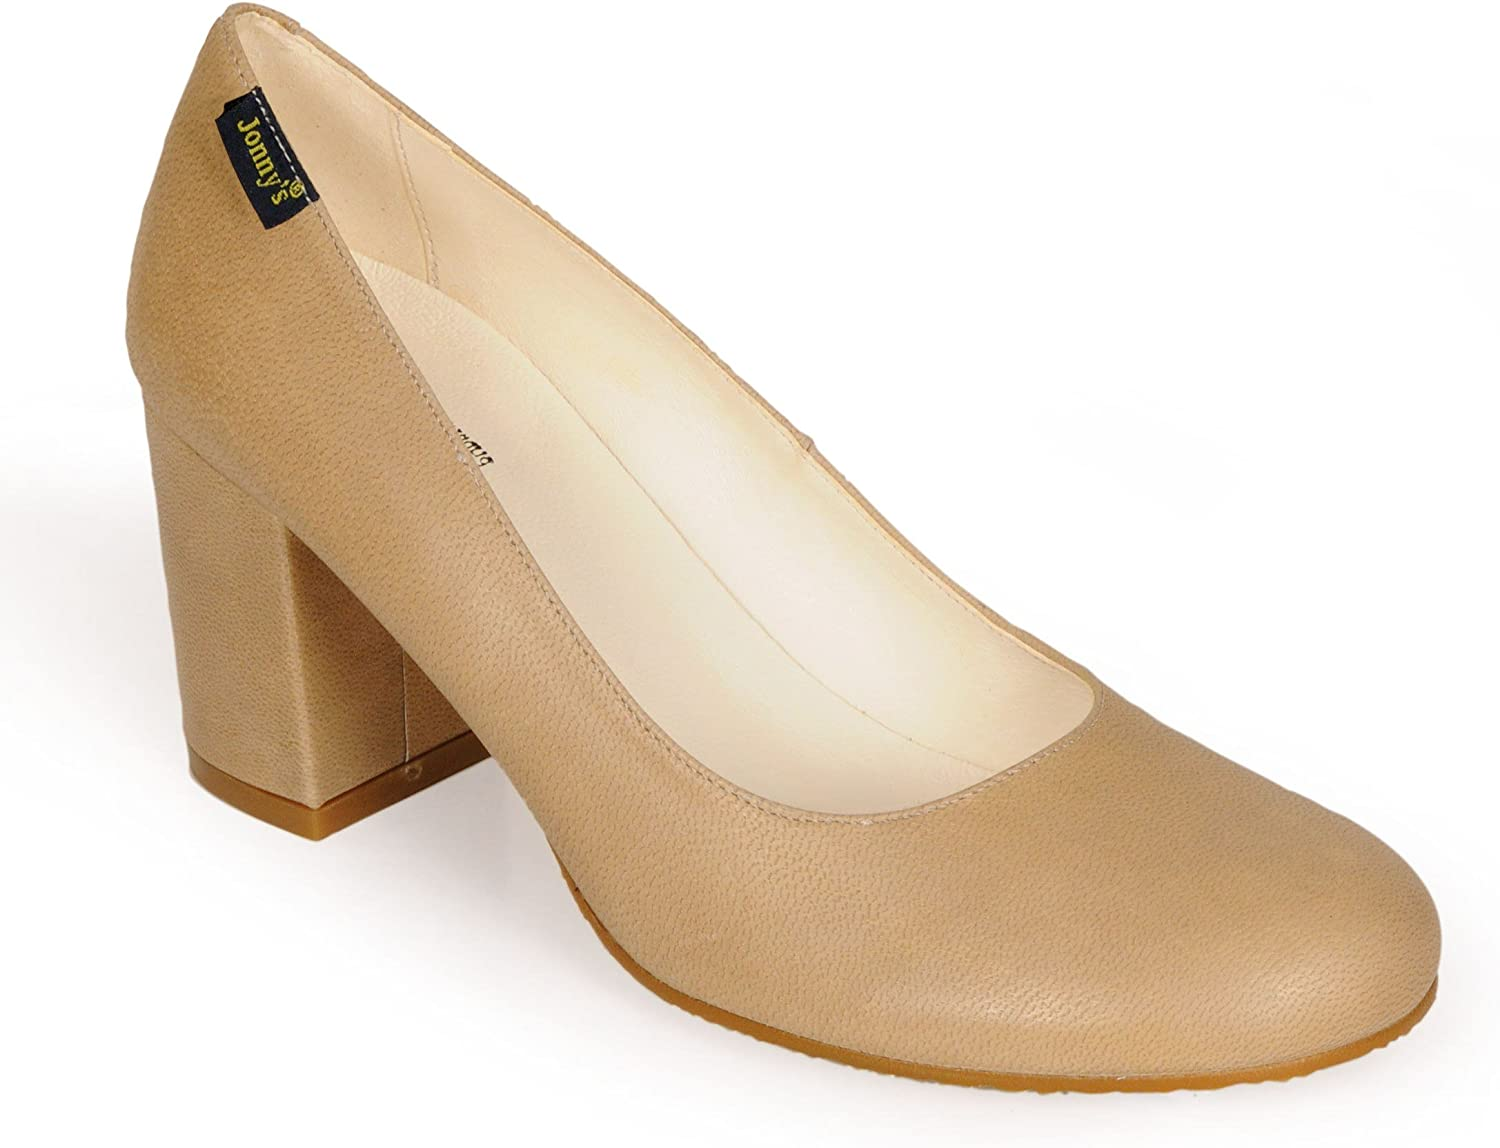 Damen Pumps Sixties beige Gr. 39: : Schuhe